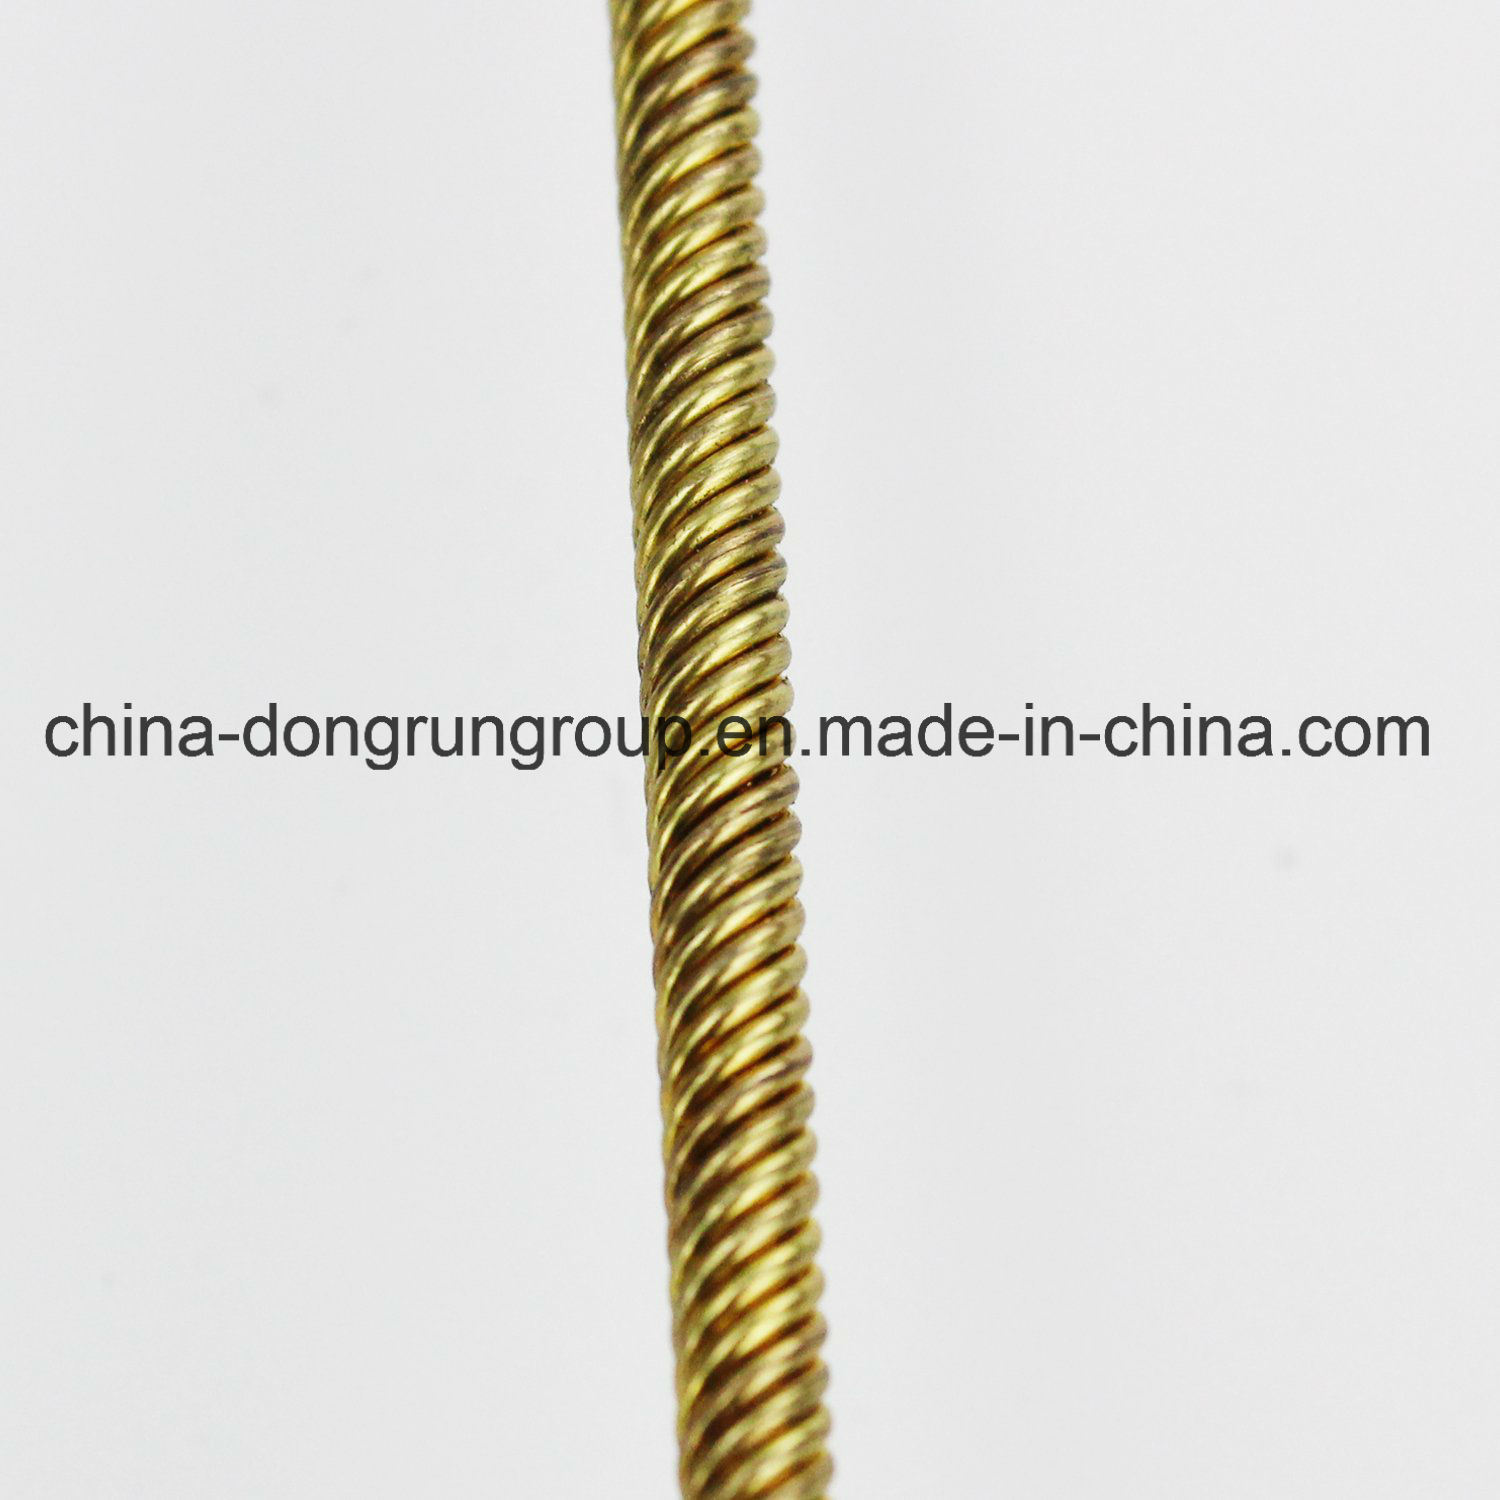 Flexible Shaft of Cleaning Machine 6mm